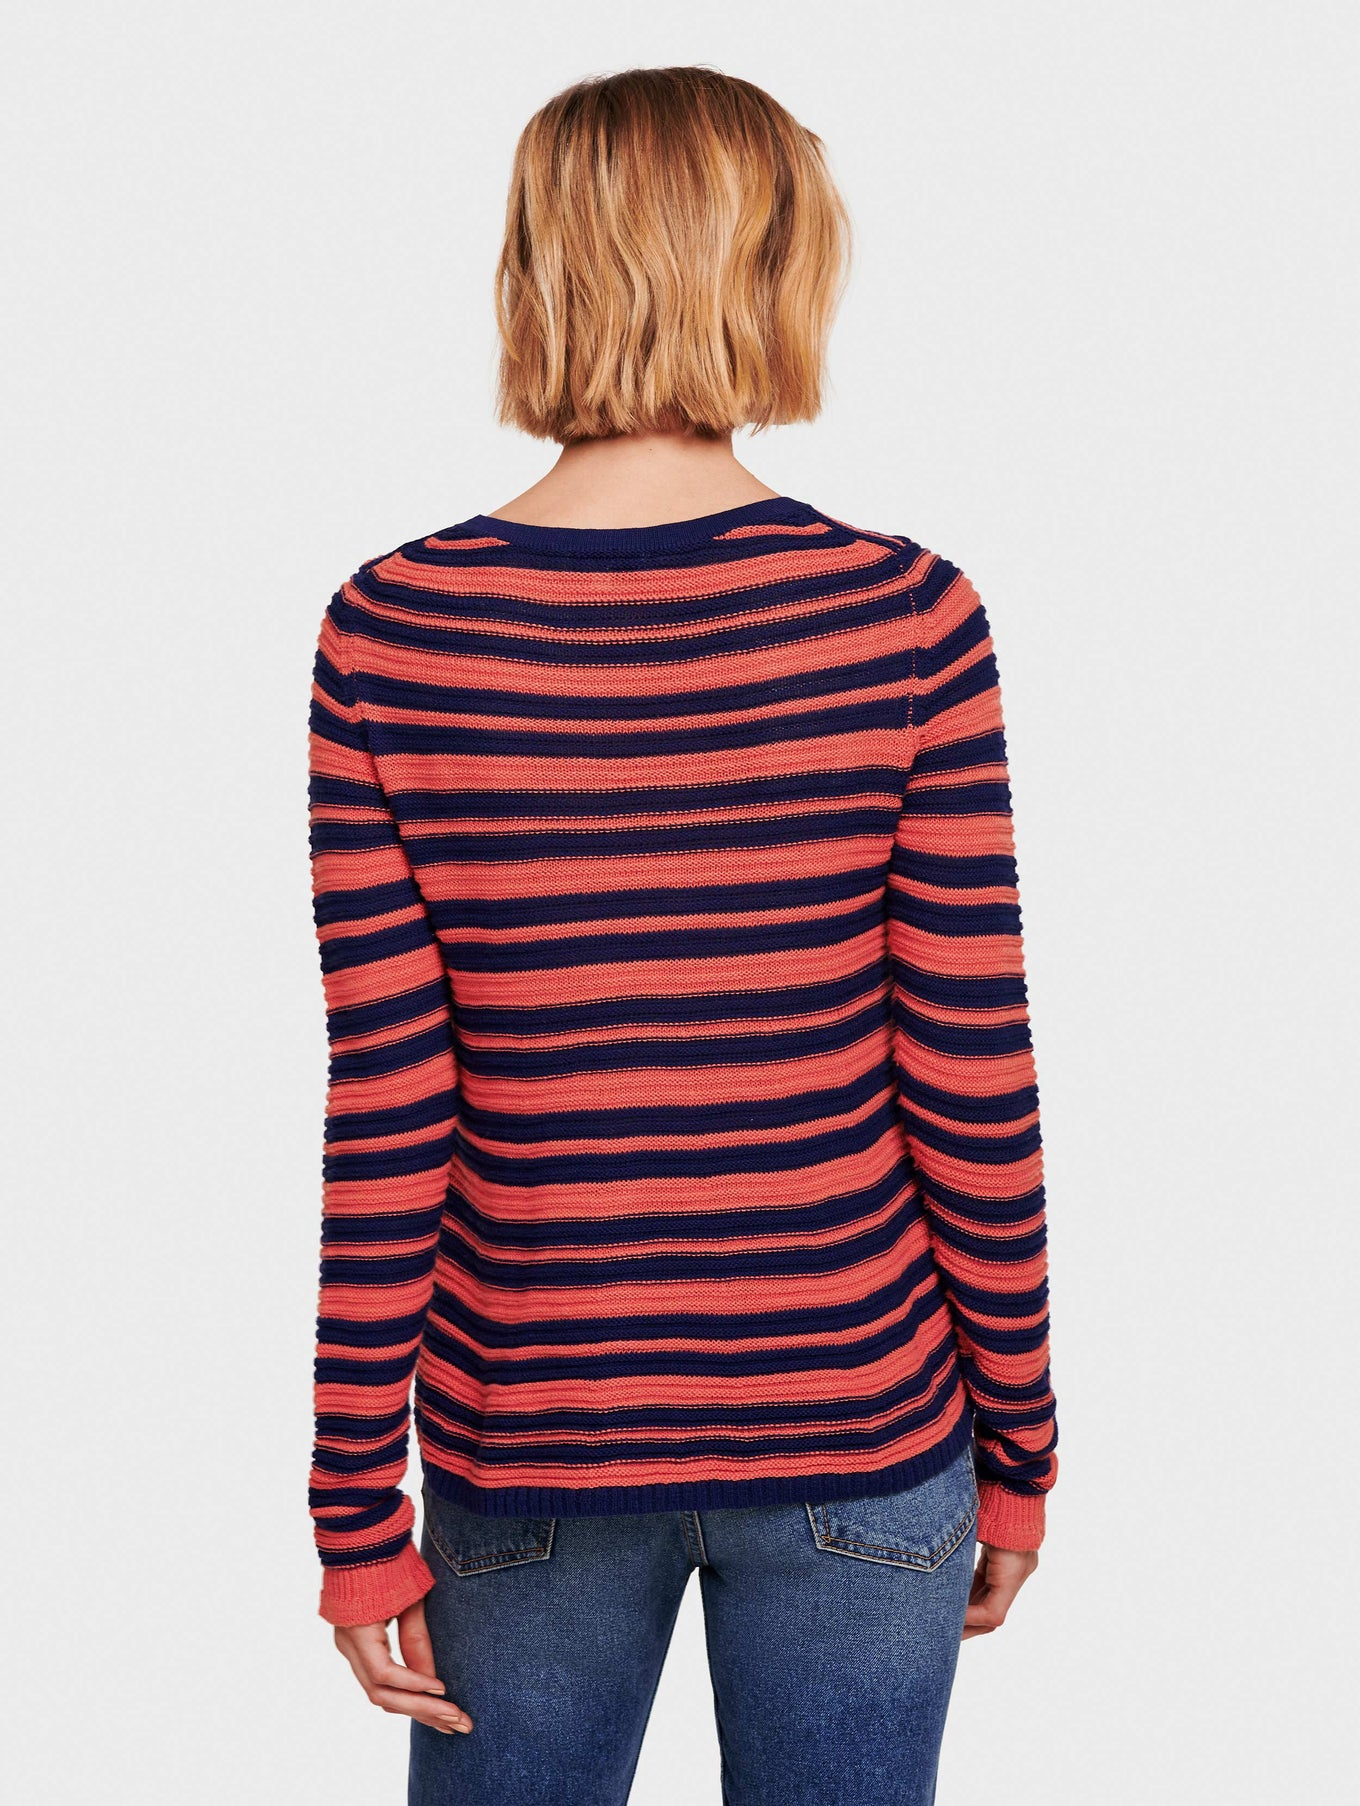 Cotton Slub Striped Swing Open Crewneck - Ocean/Rose - Image 3